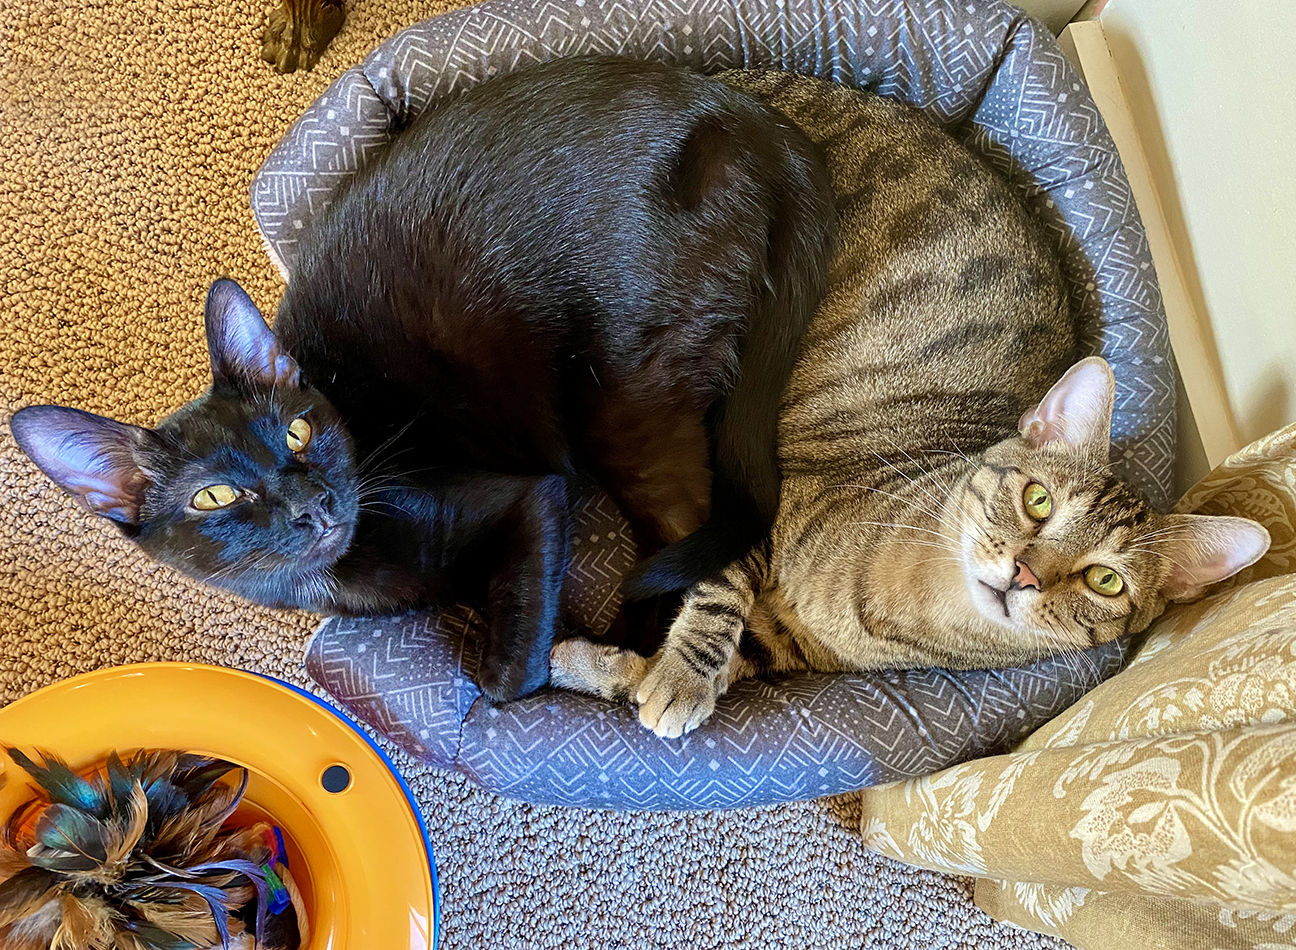 Basepaws cat Joey and Mico cuddling.